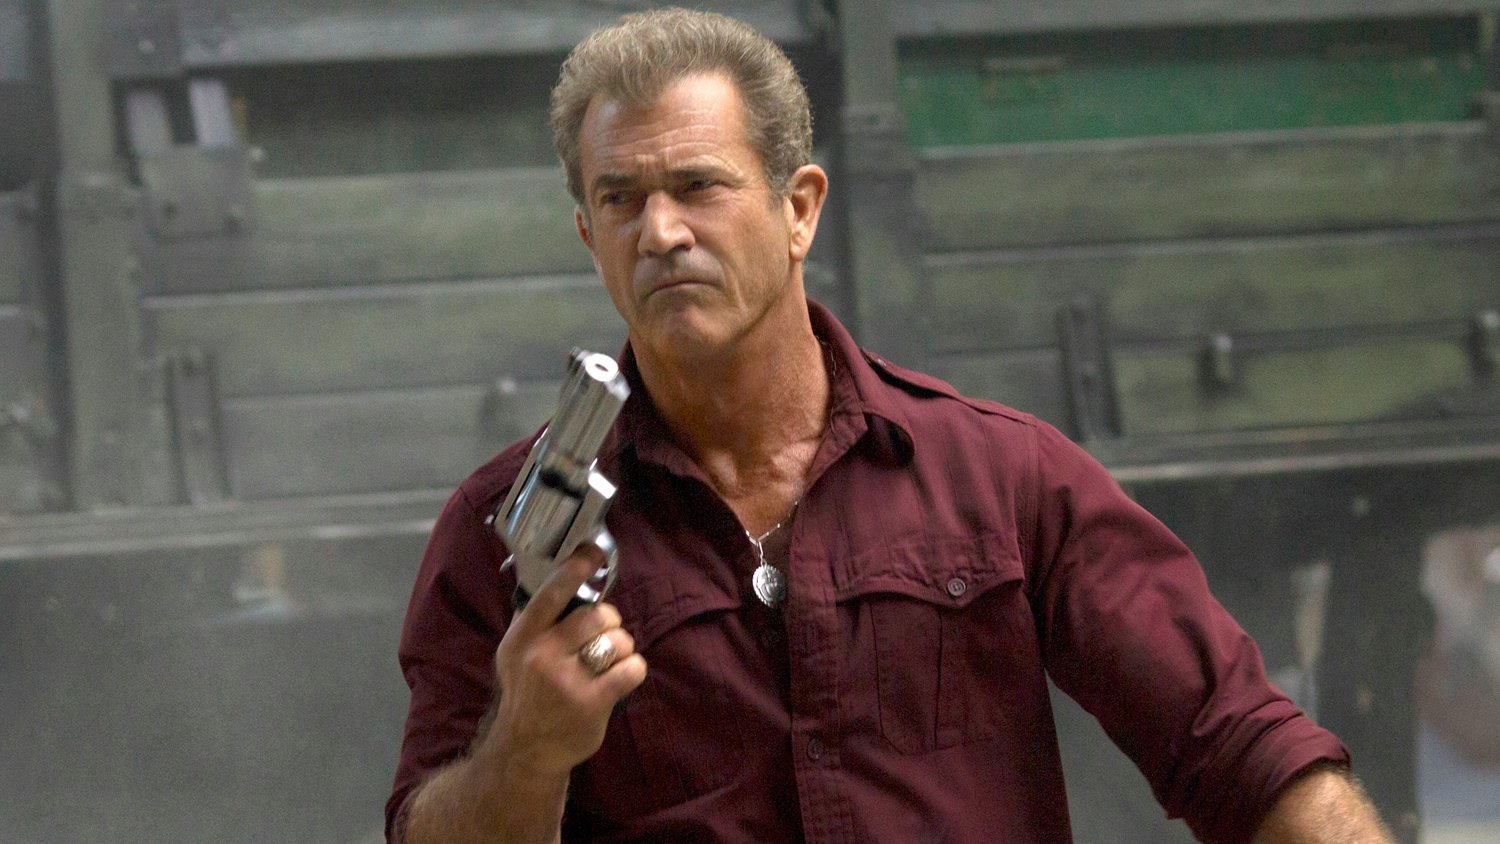 BLOOD FATHER: New Trailer and Poster For The Mel Gibson Action